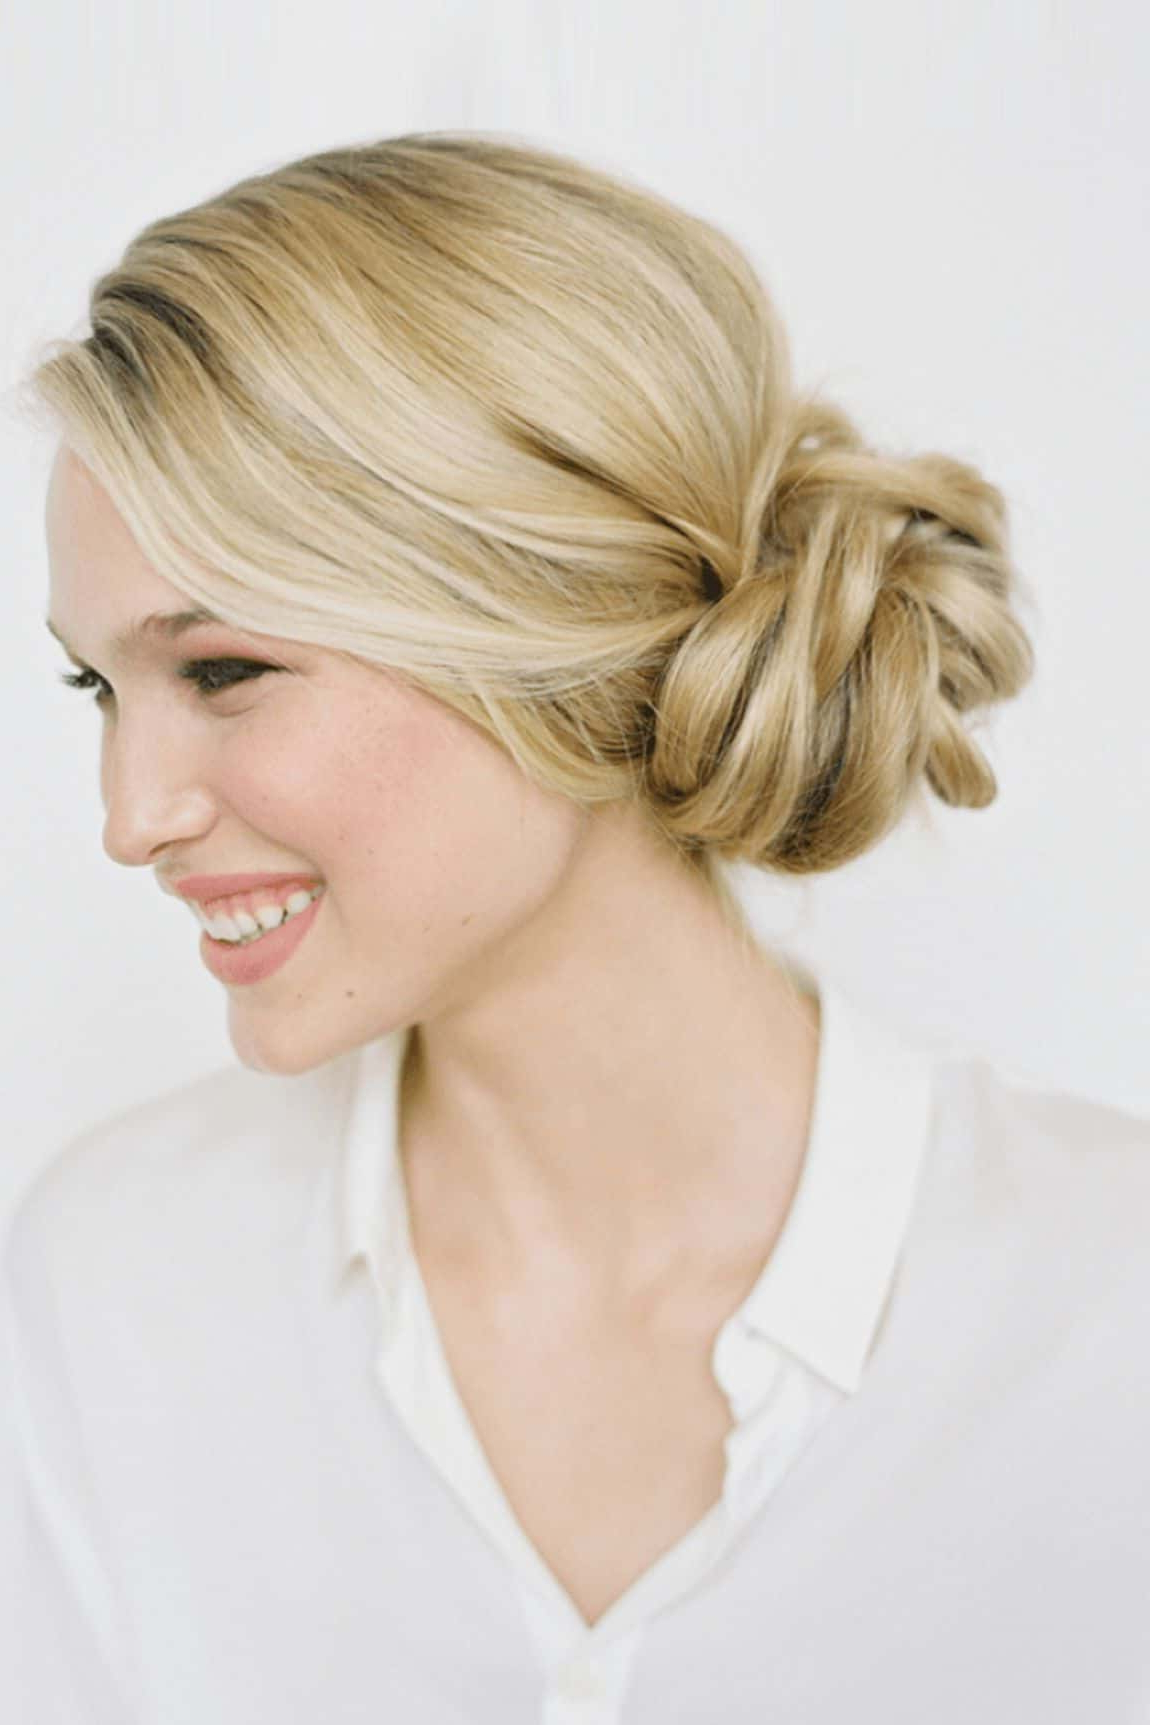 Trendy Side Bun Twined Prom Hairstyles With A Braid Intended For Best 10 Prom Hairstyles That Can Rock The Dance Floor! (View 9 of 20)